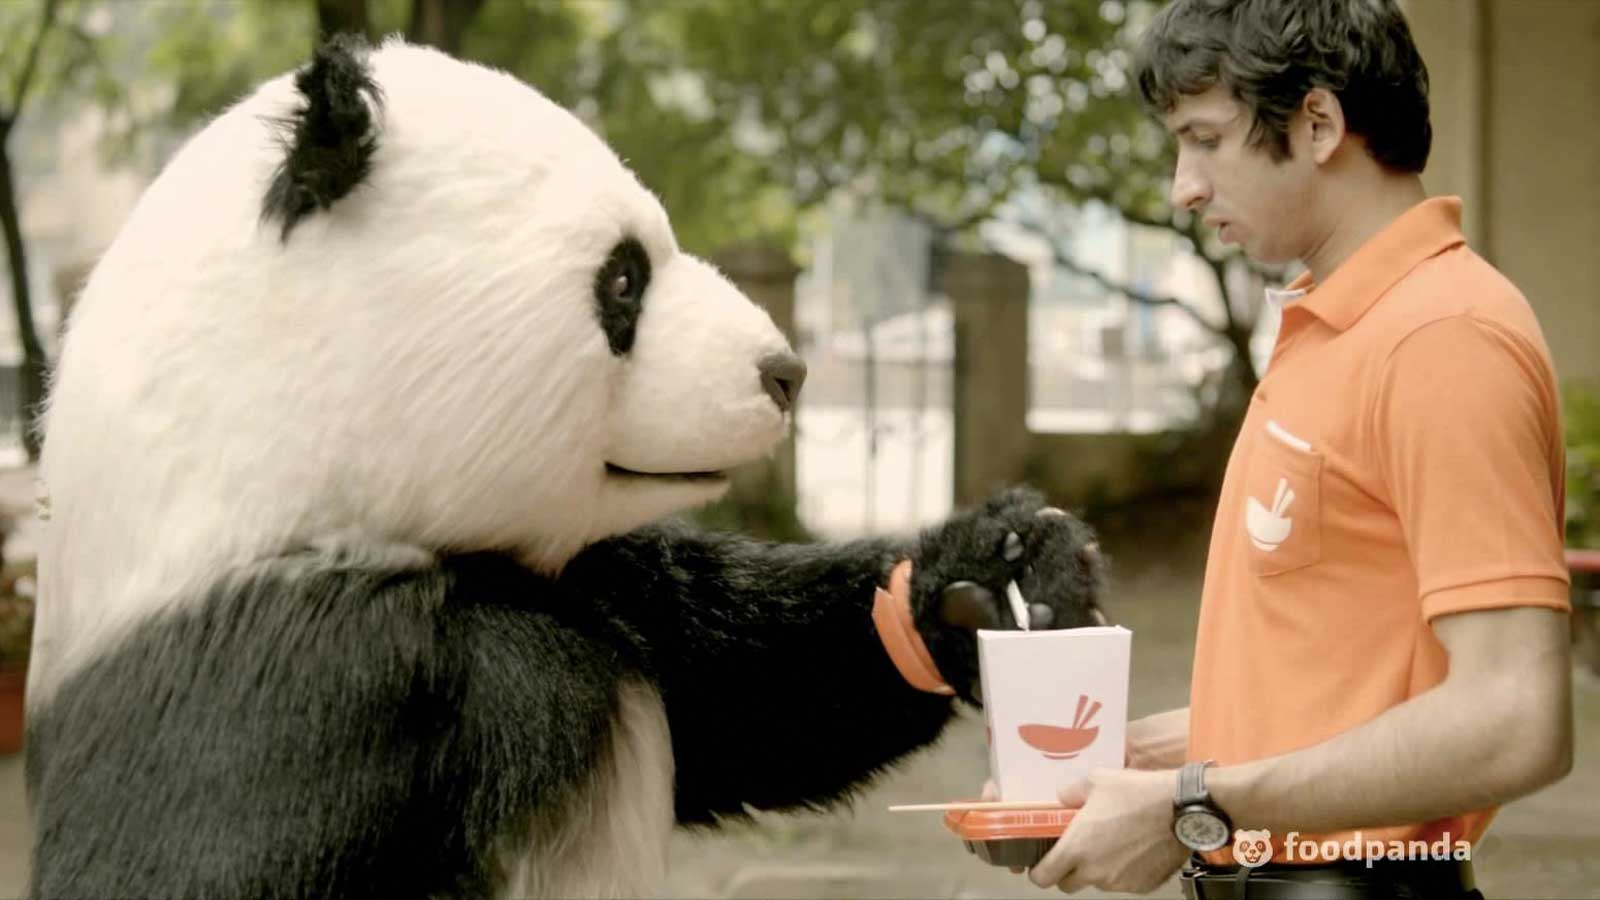 It's Pandamonium at Foodpanda!